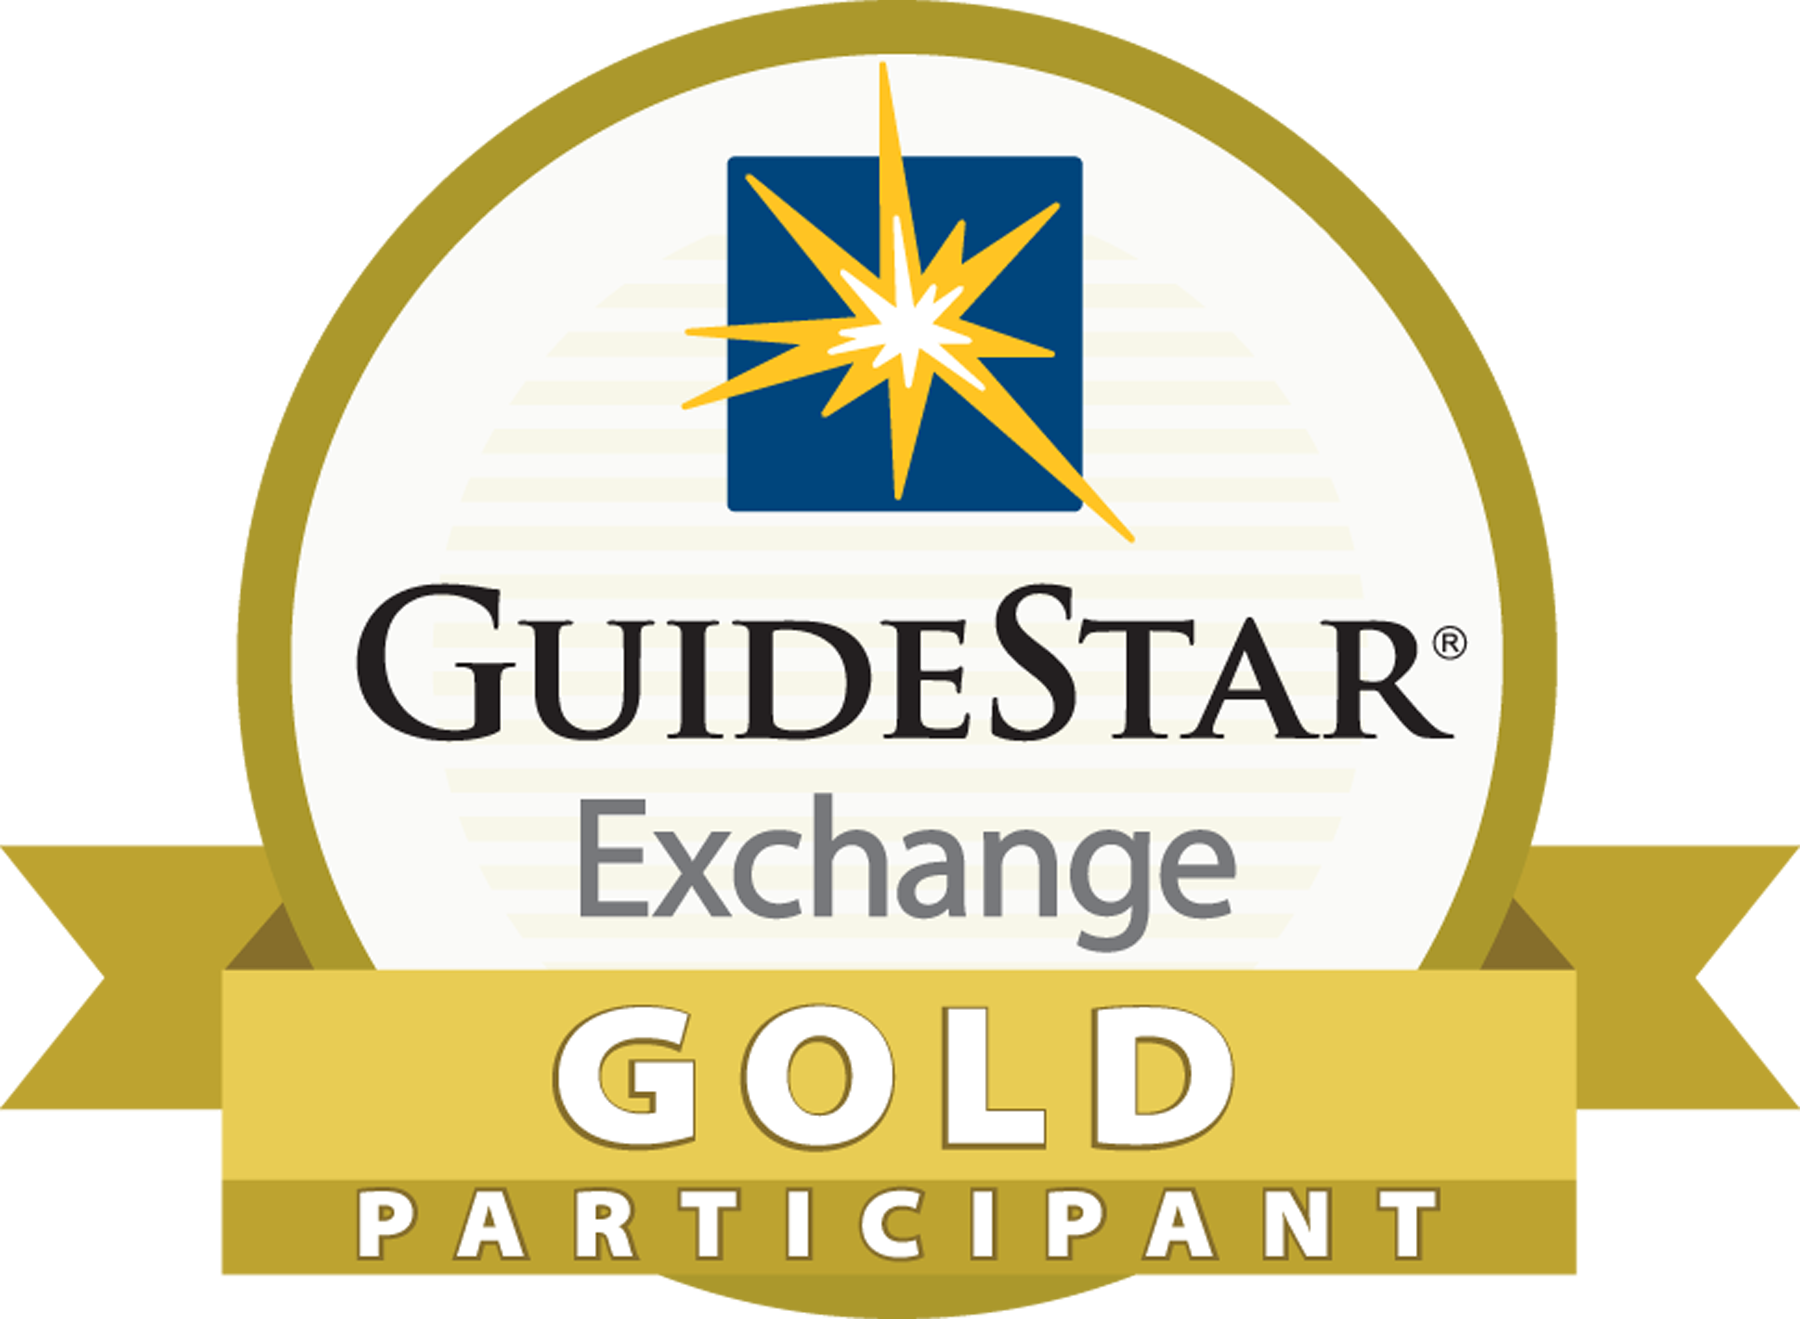 Proudly a GuideStar®Gold Participant